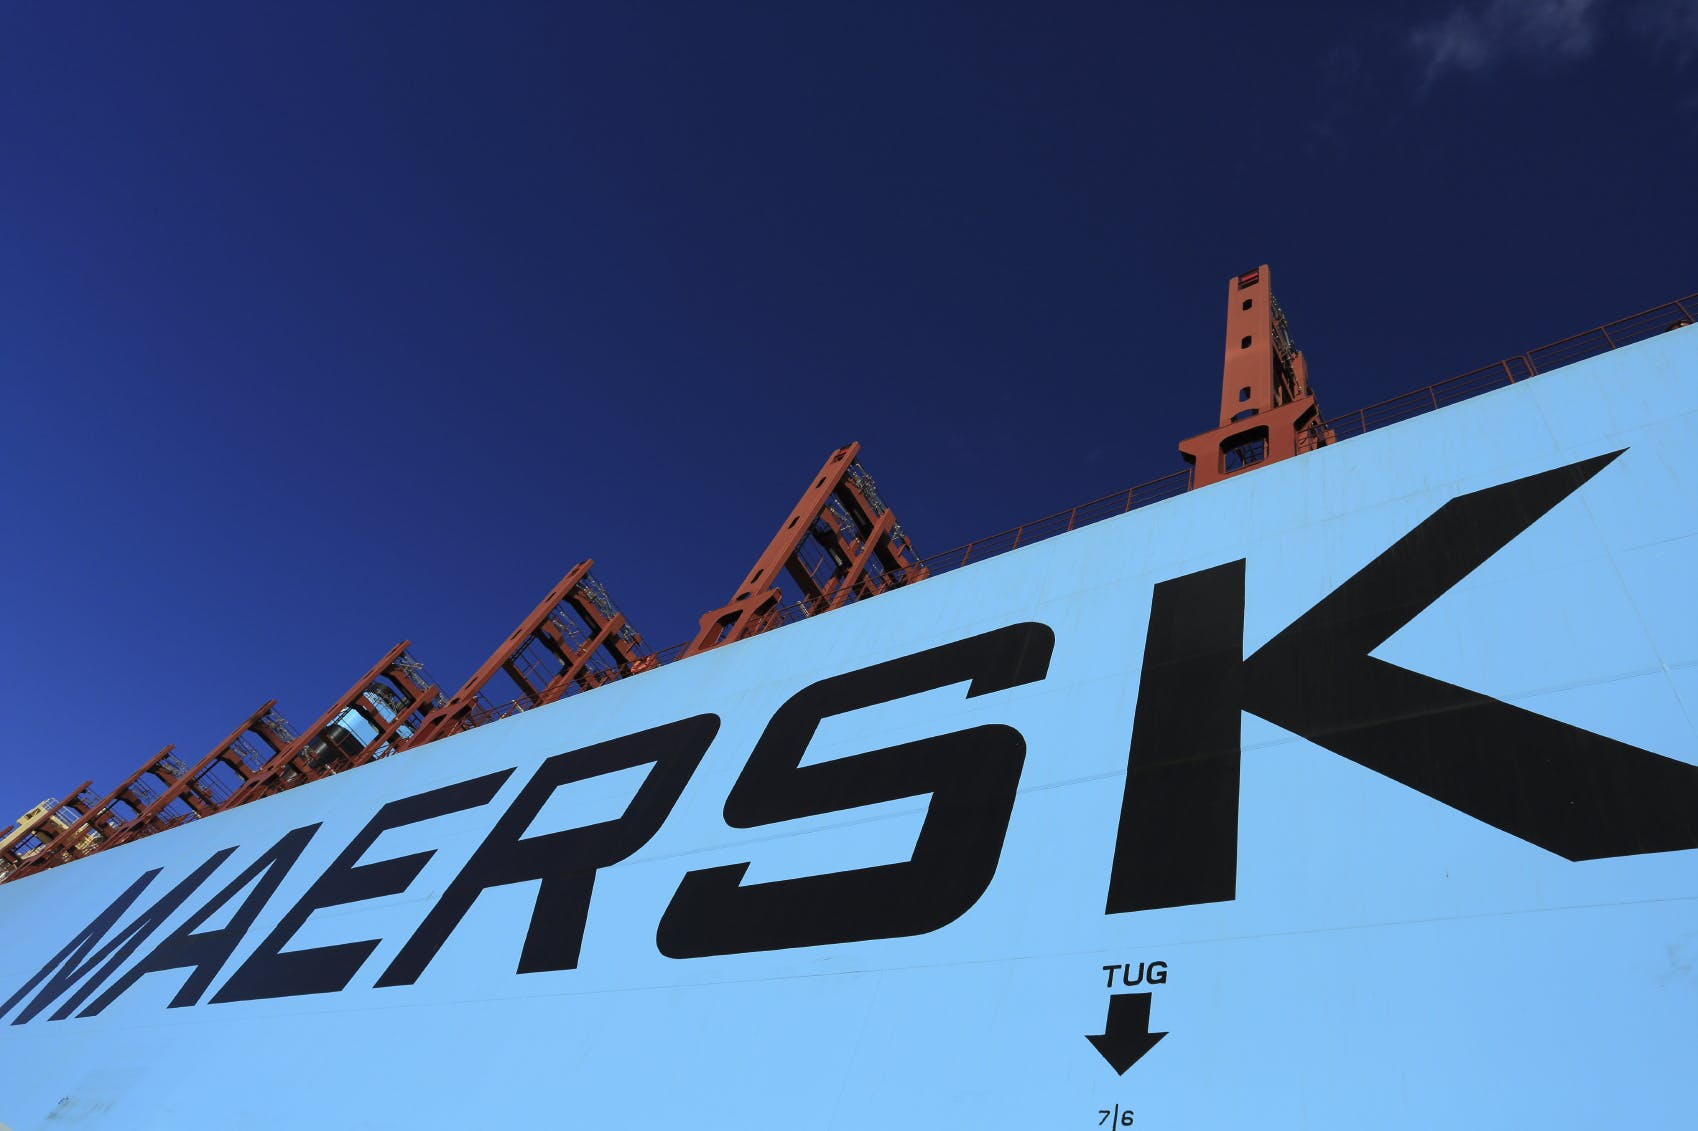 Shipping giant Maersk launches drive to cut legal costs and adviser